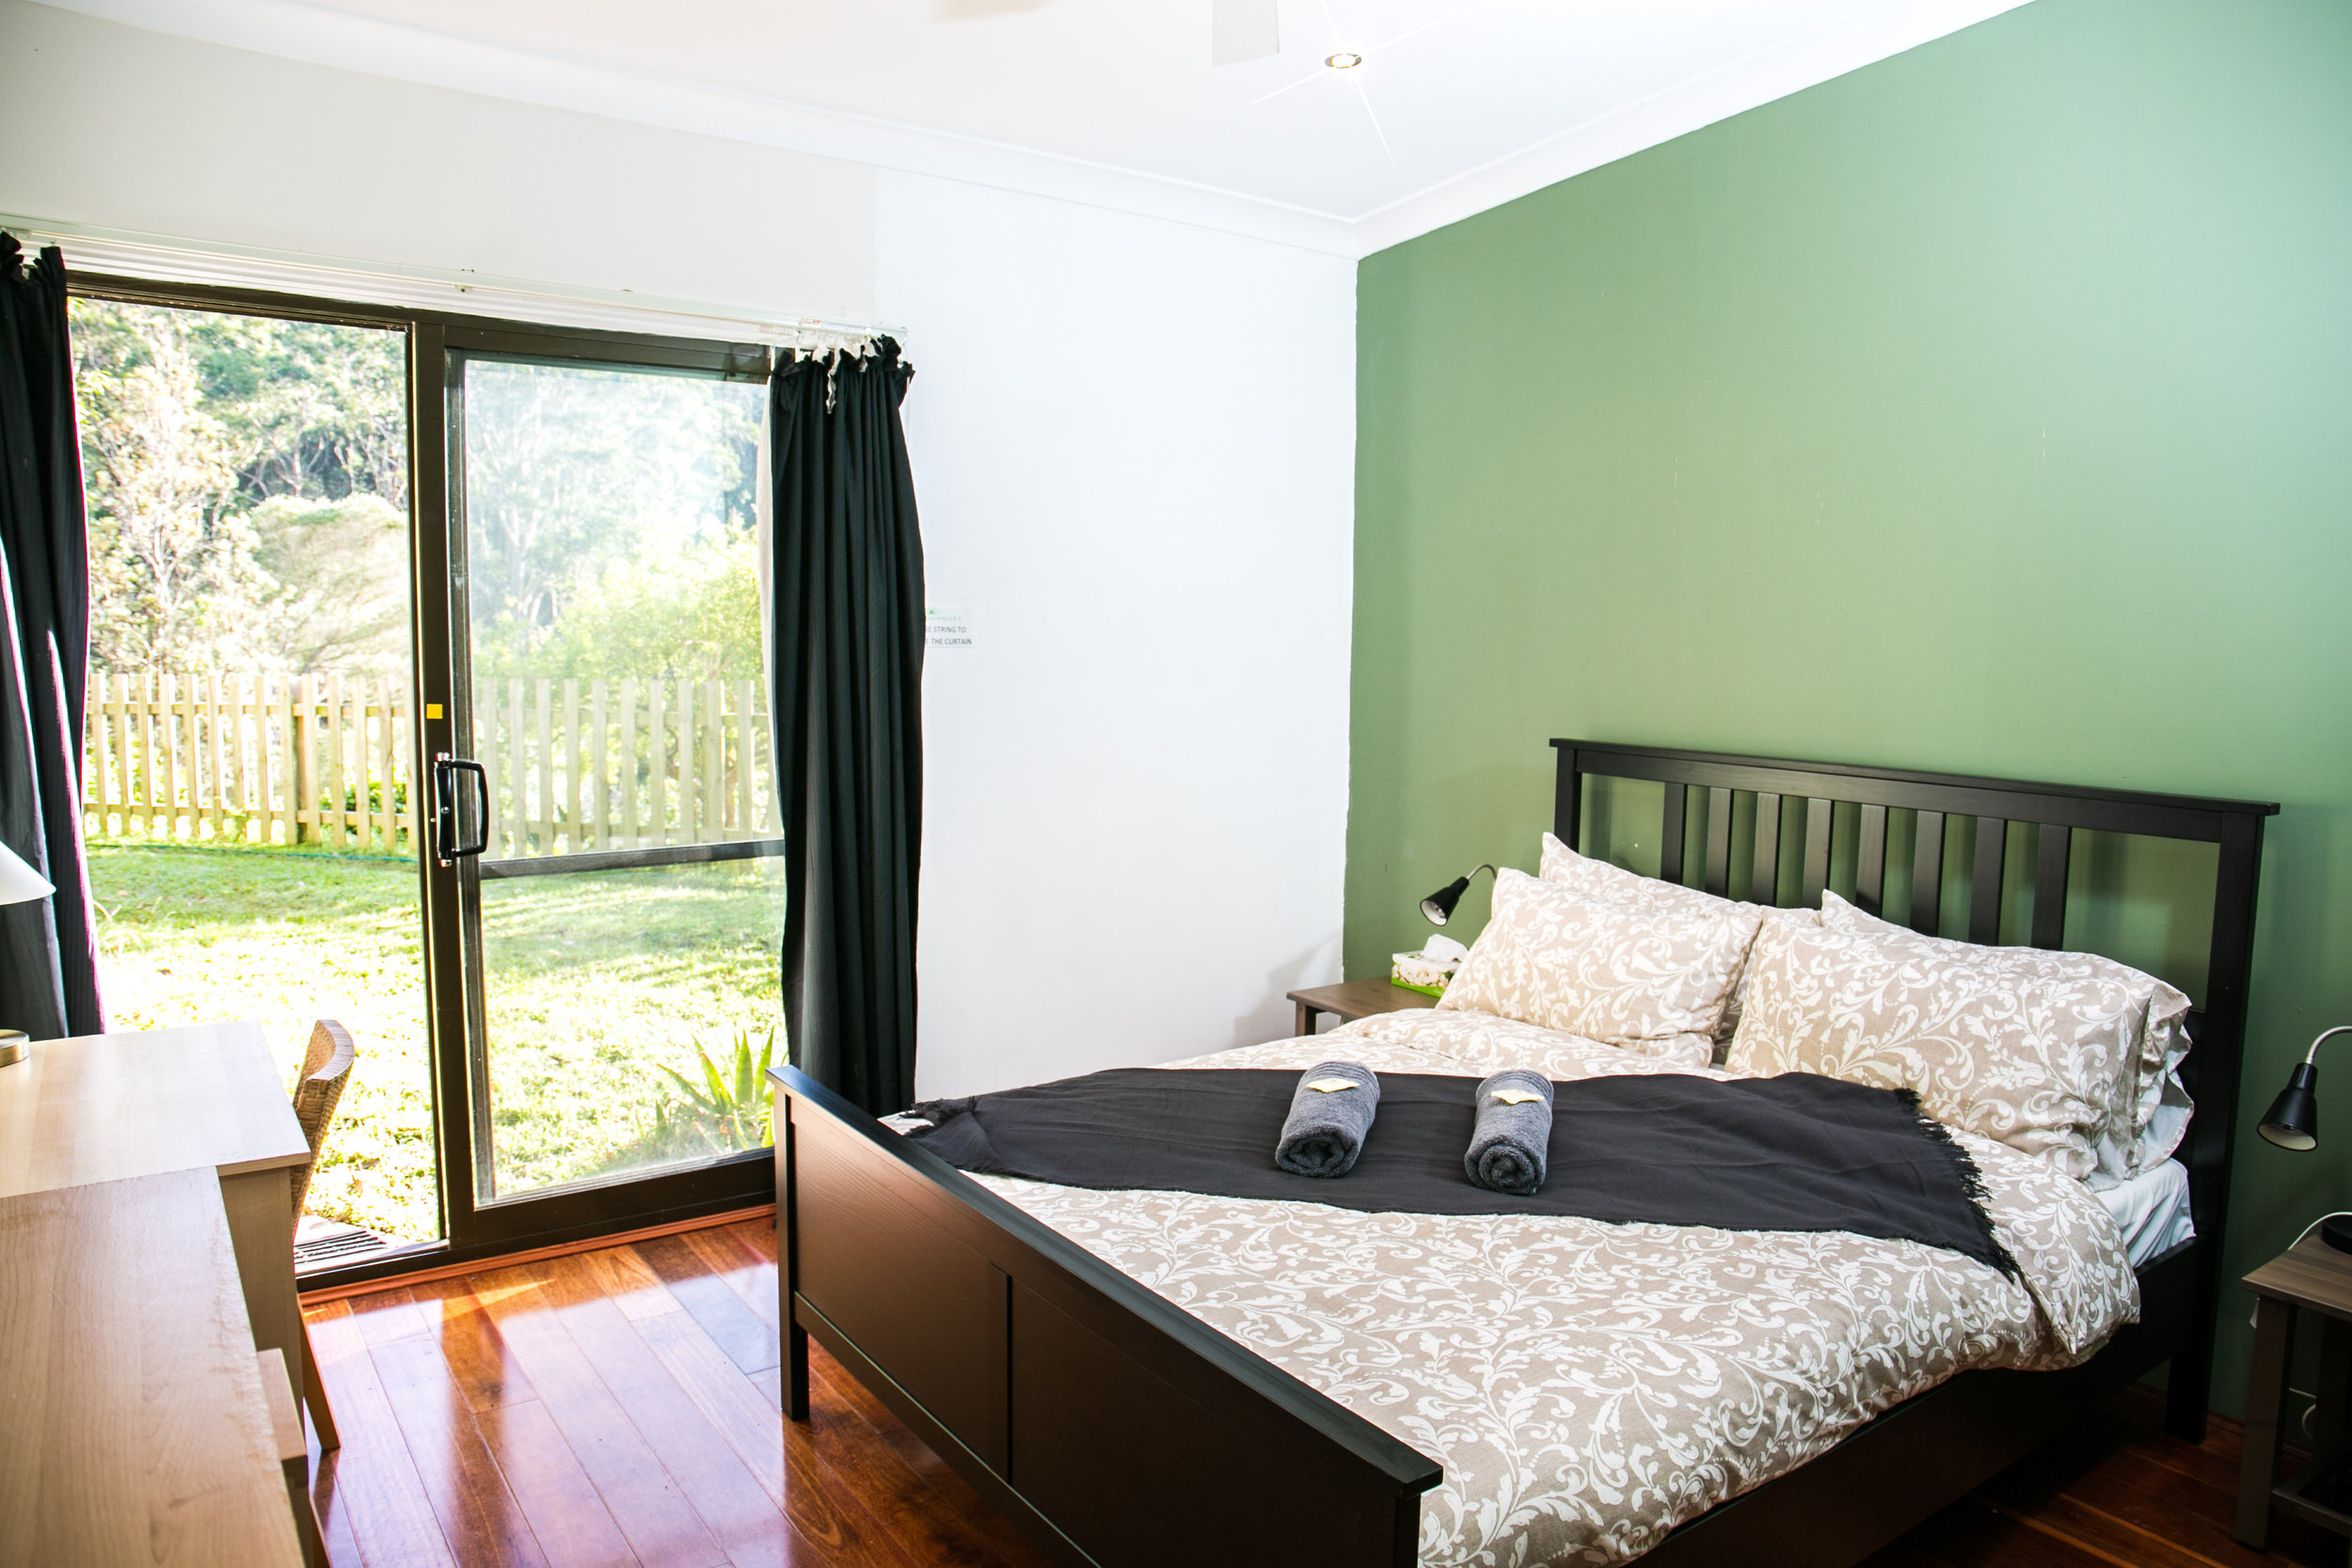 PACKAGE 2 - QUEEN BED + SINGLE BED W/ ENSUITE Features: Private Bathroom, Queen Size Bed + Single bed, polished wooden floors, fans + heater, free high speed WiFi, free parking. Access to all yoga classes + 3 vegan meals daily + workshops.